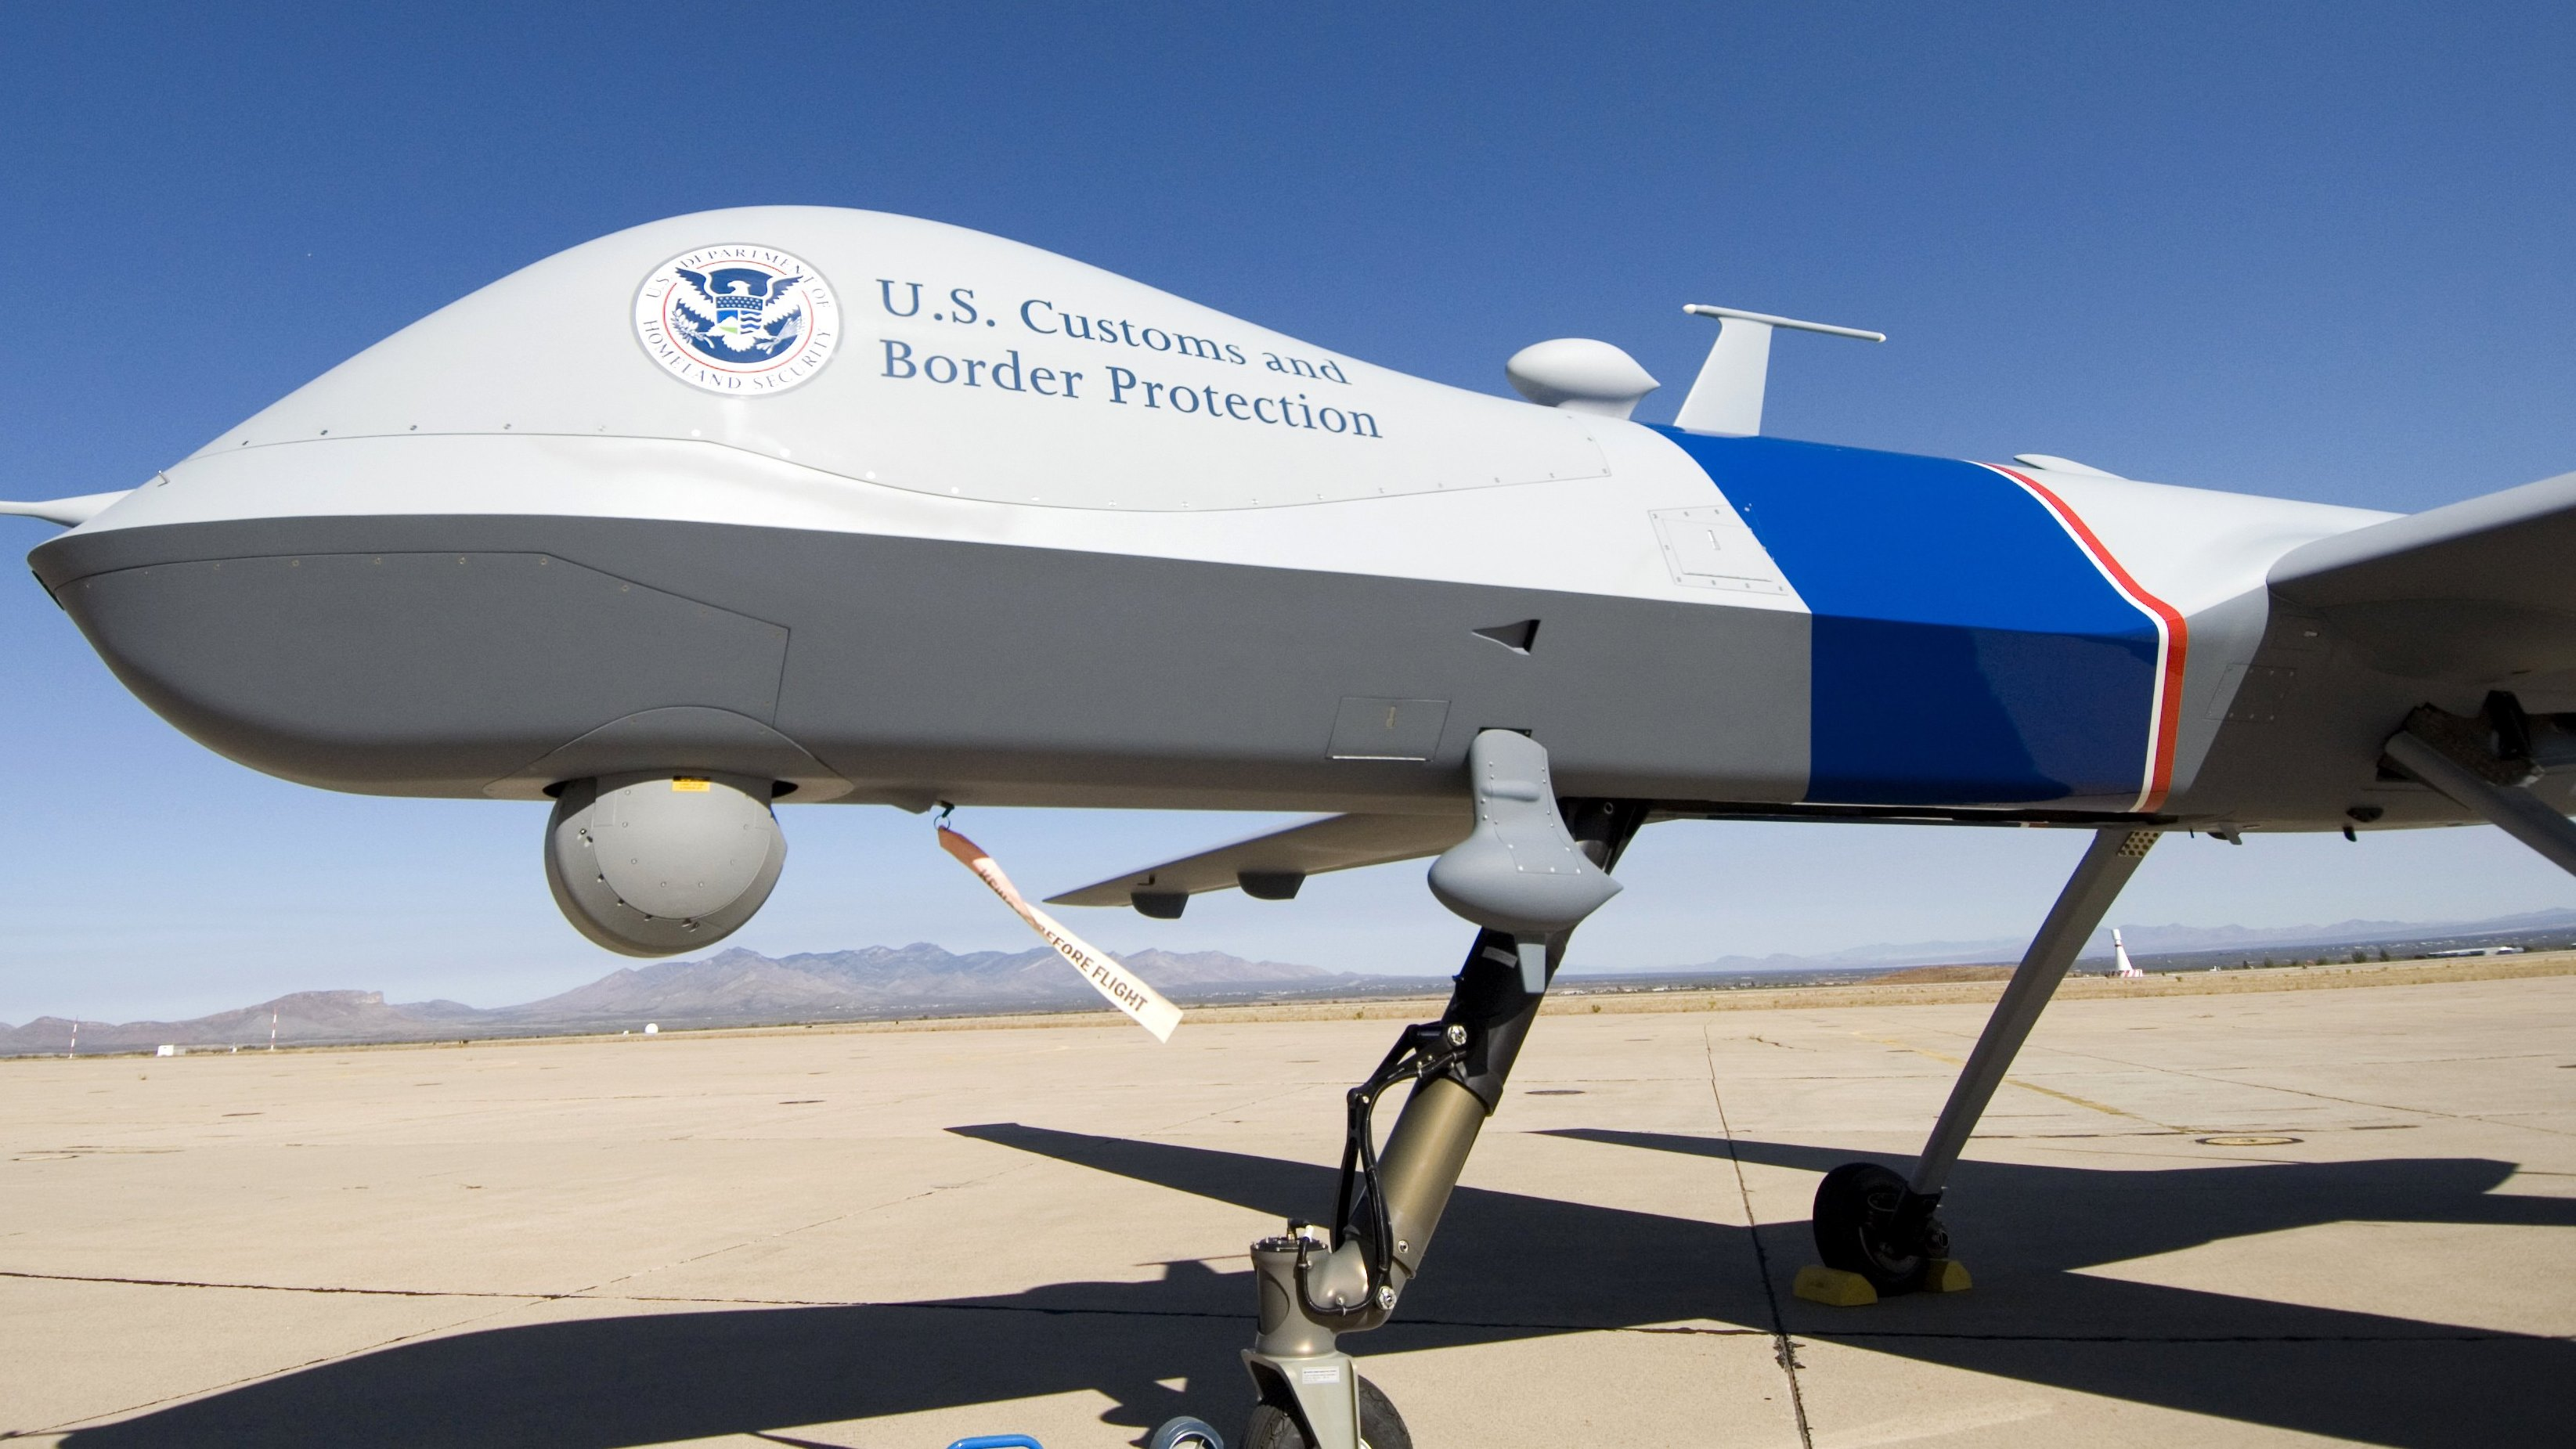 predator drones with Cbp To Conduct First Ever Test Of Predator Drone At Civilian Airport on Watch in addition Detail in addition The Observation Bee Hive moreover Cbp To Conduct First Ever Test Of Predator Drone At Civilian Airport also Electronic Warfare Role Reaper Uav.